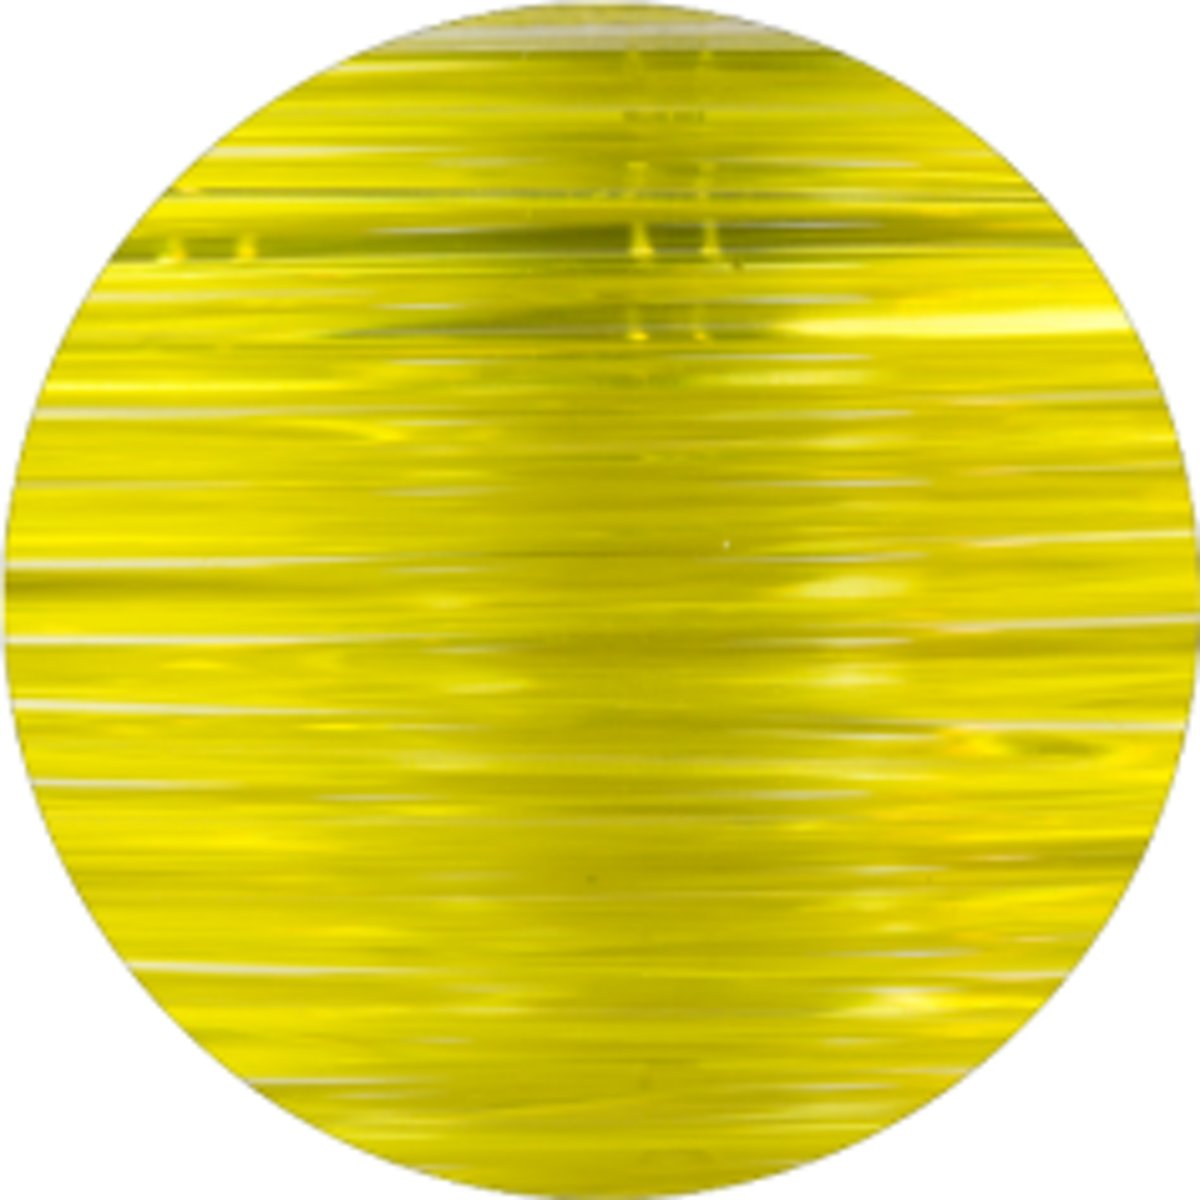 NGEN YELLOW TRANSPARENT 1.75 / 750